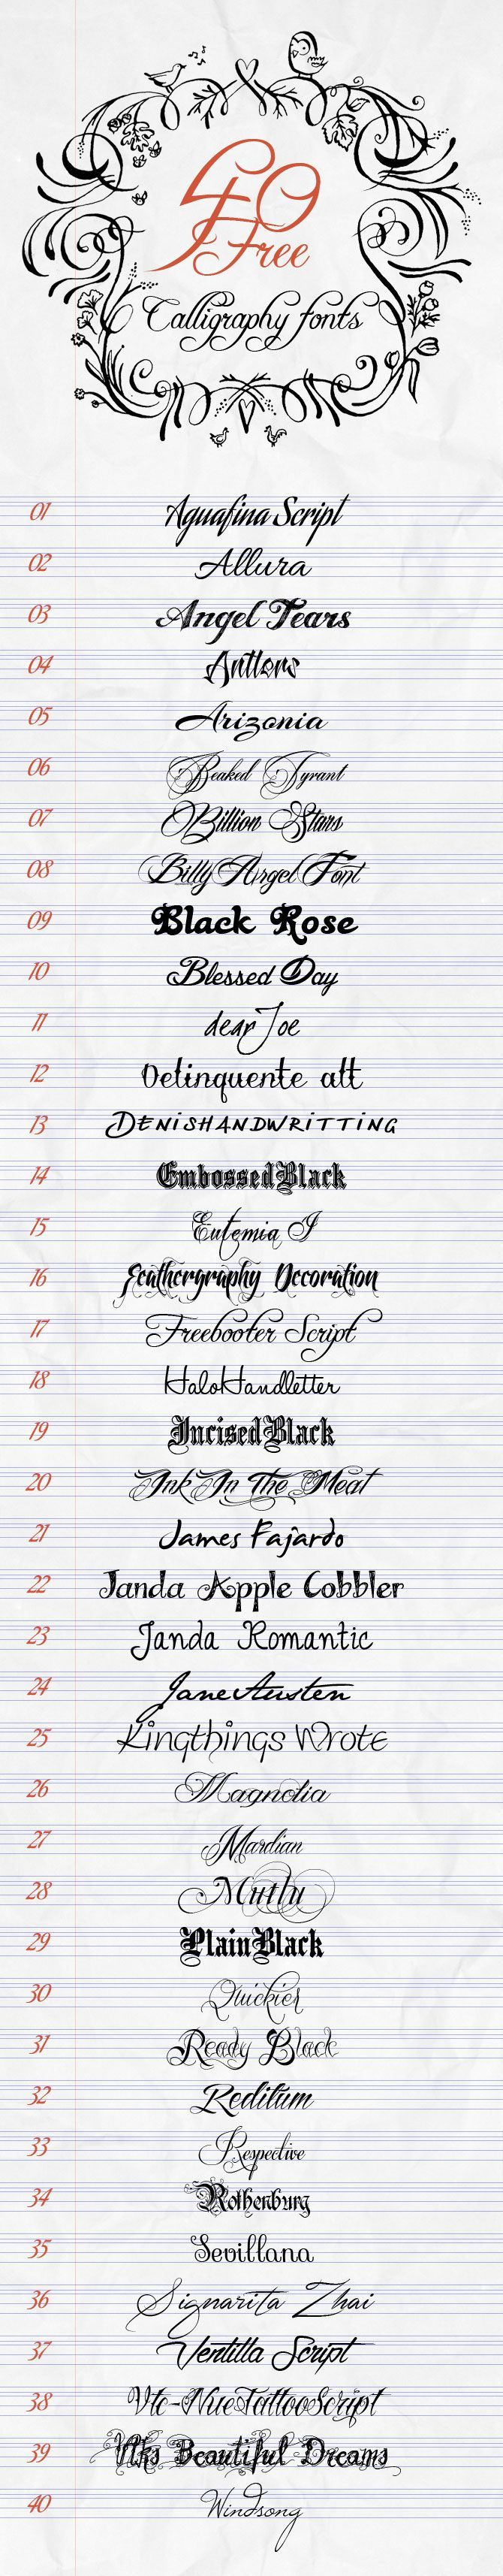 The Art of Calligraphy – 40 Free Fonts for Creative Writing - An insightful blog post on using Calligraphic fonts efficiently - along with a mountain of freebies!